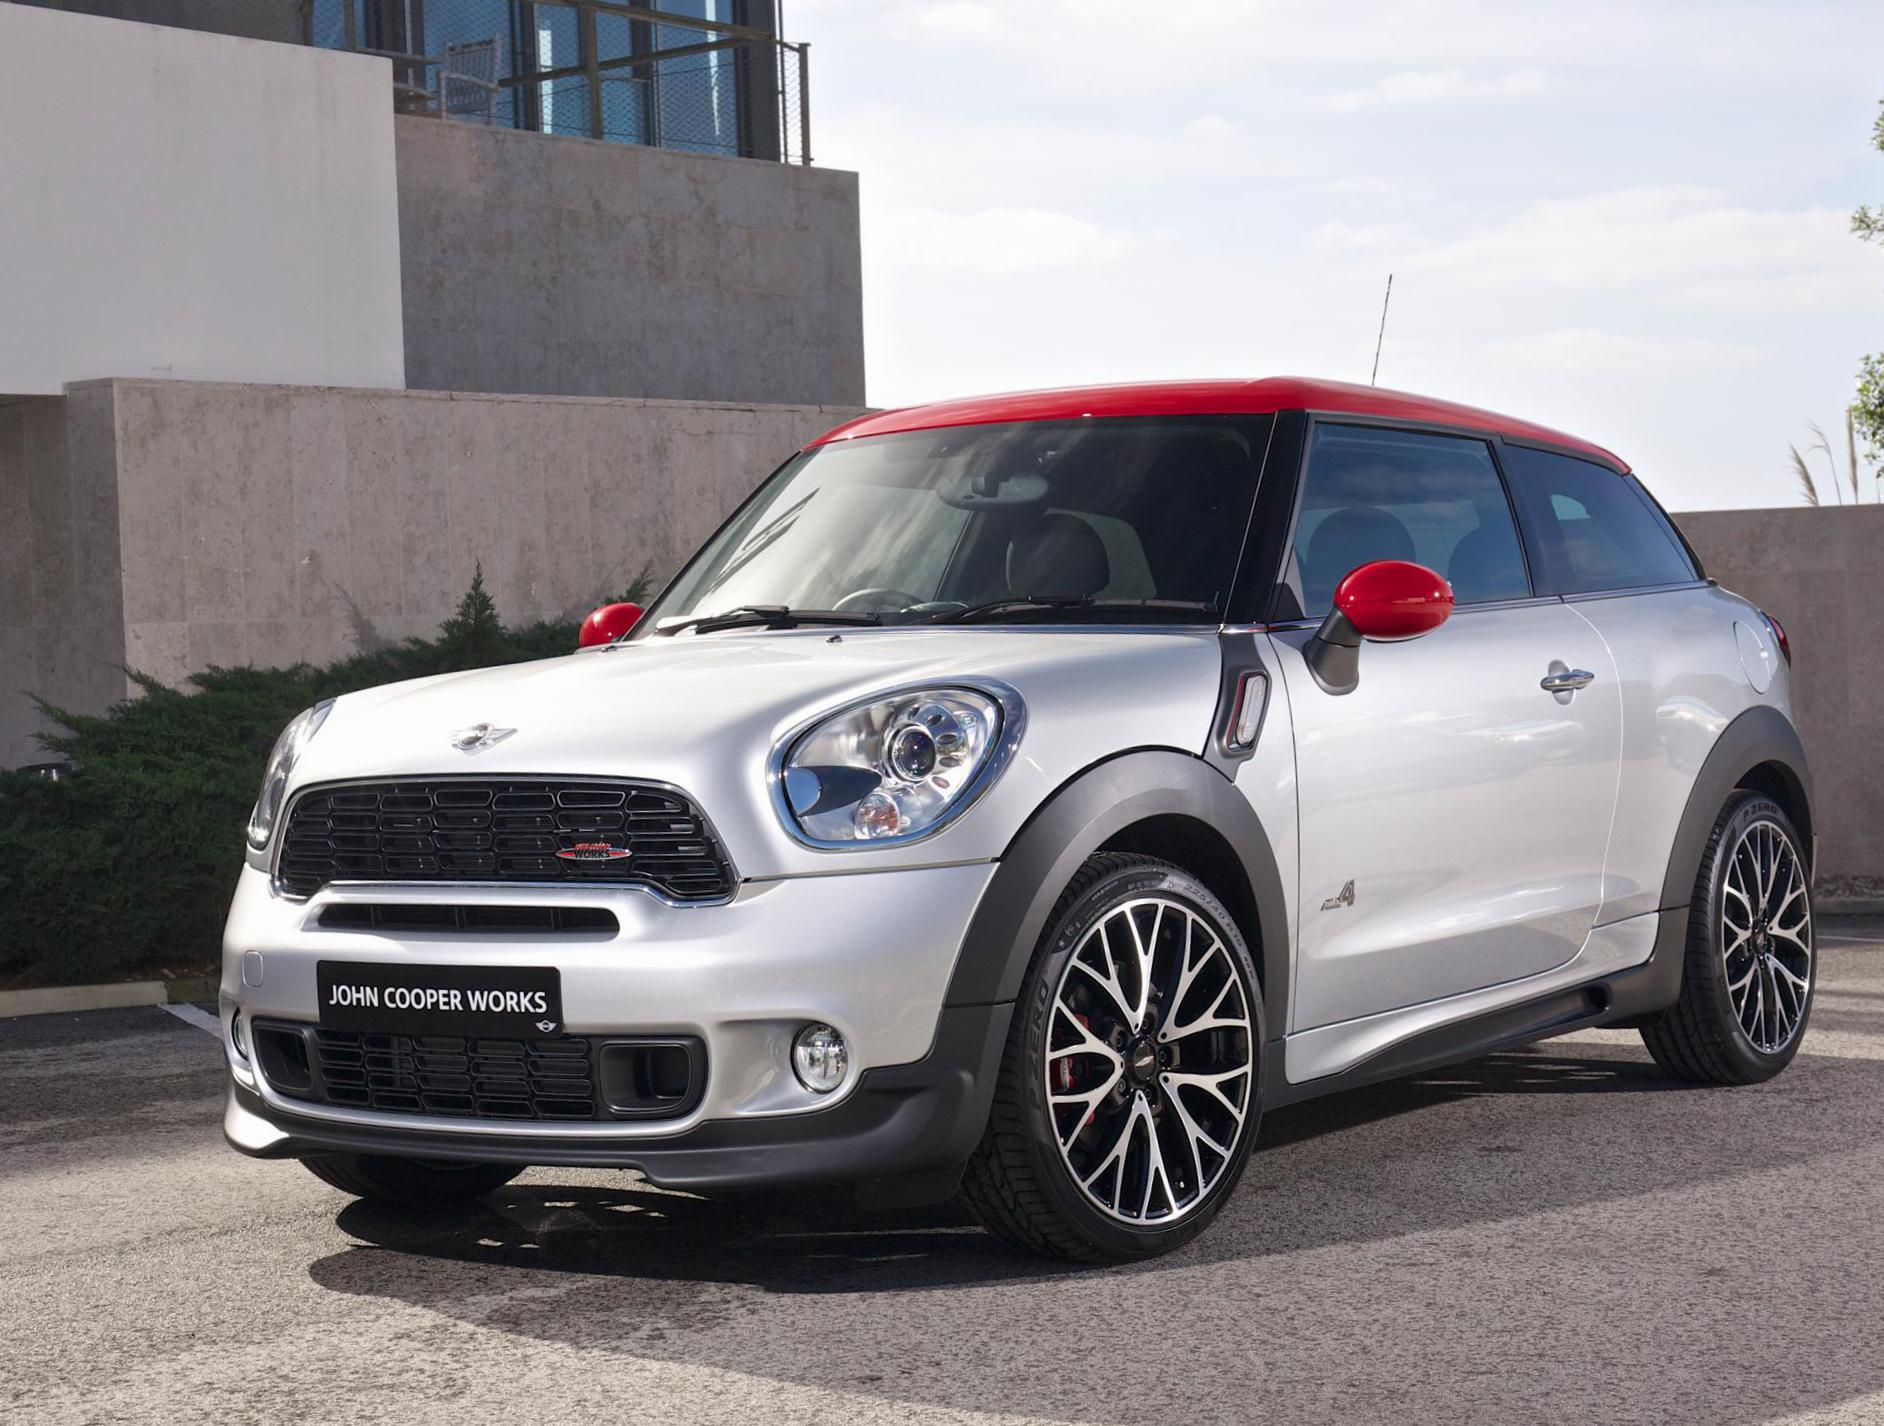 John Cooper Works Paceman MINI for sale 2012